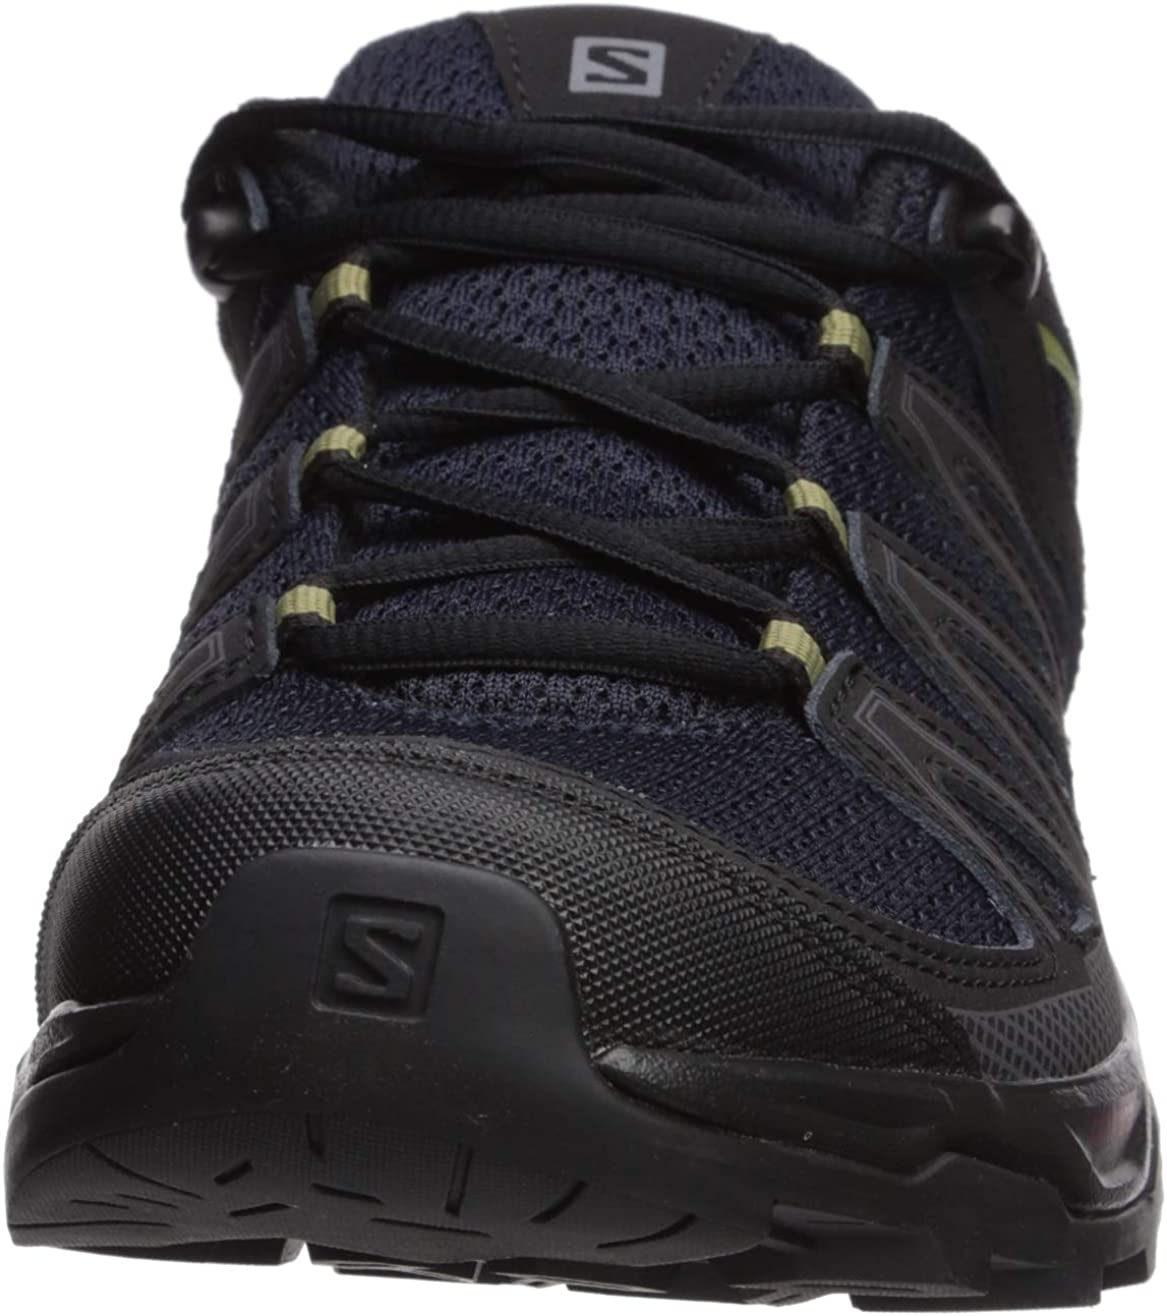 zapatos salomon hombre amazon outlet ny locations peru way